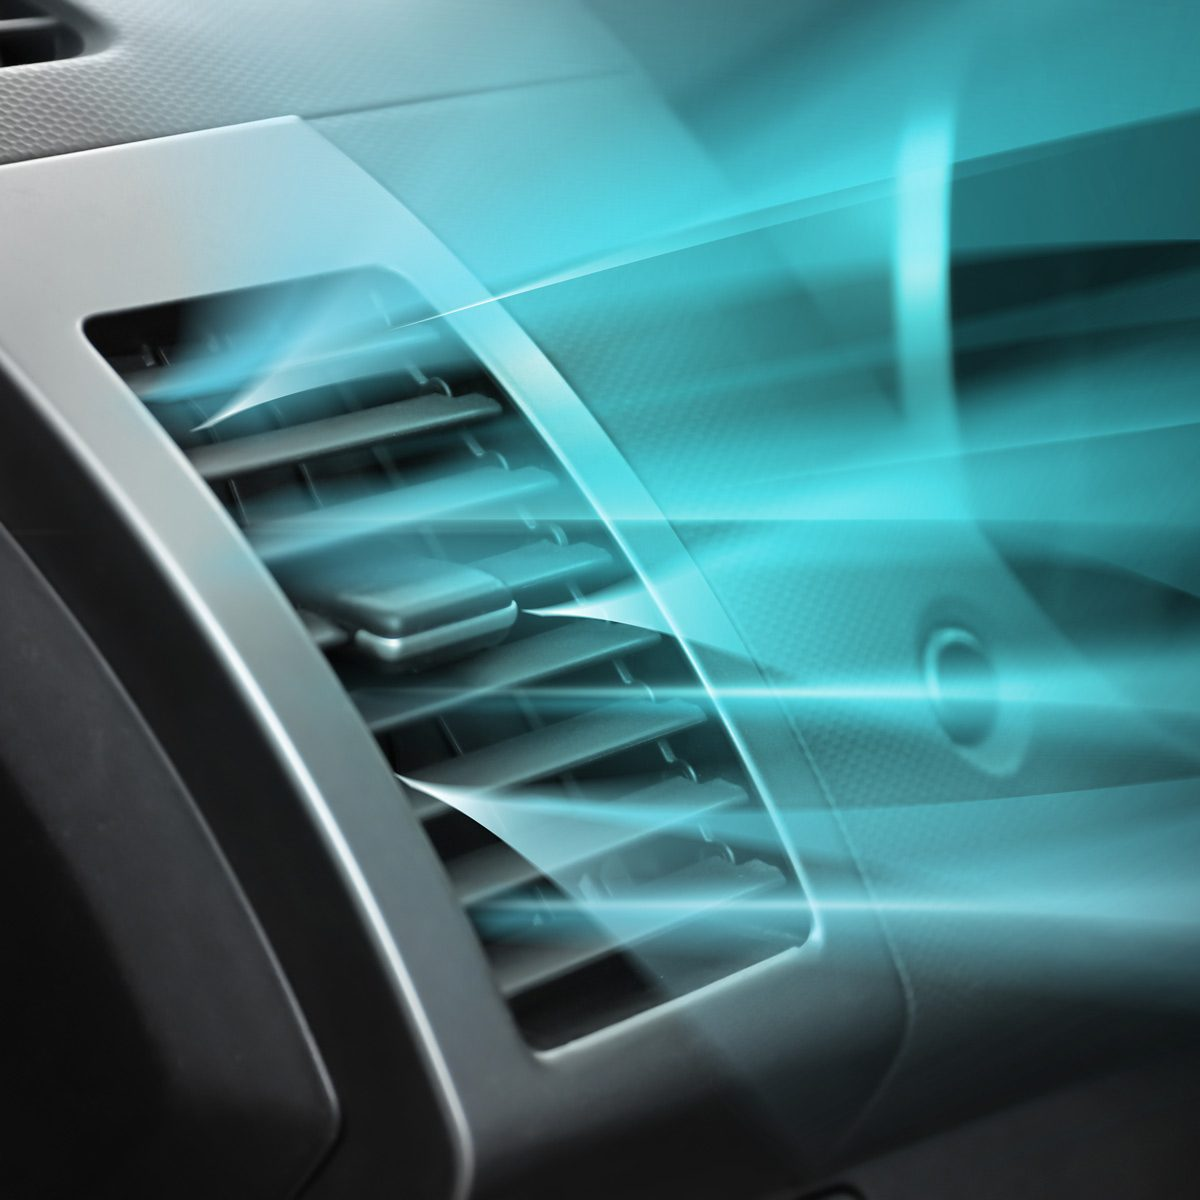 Switched-on-conditioner-with-flow-of-cold-air-in-car